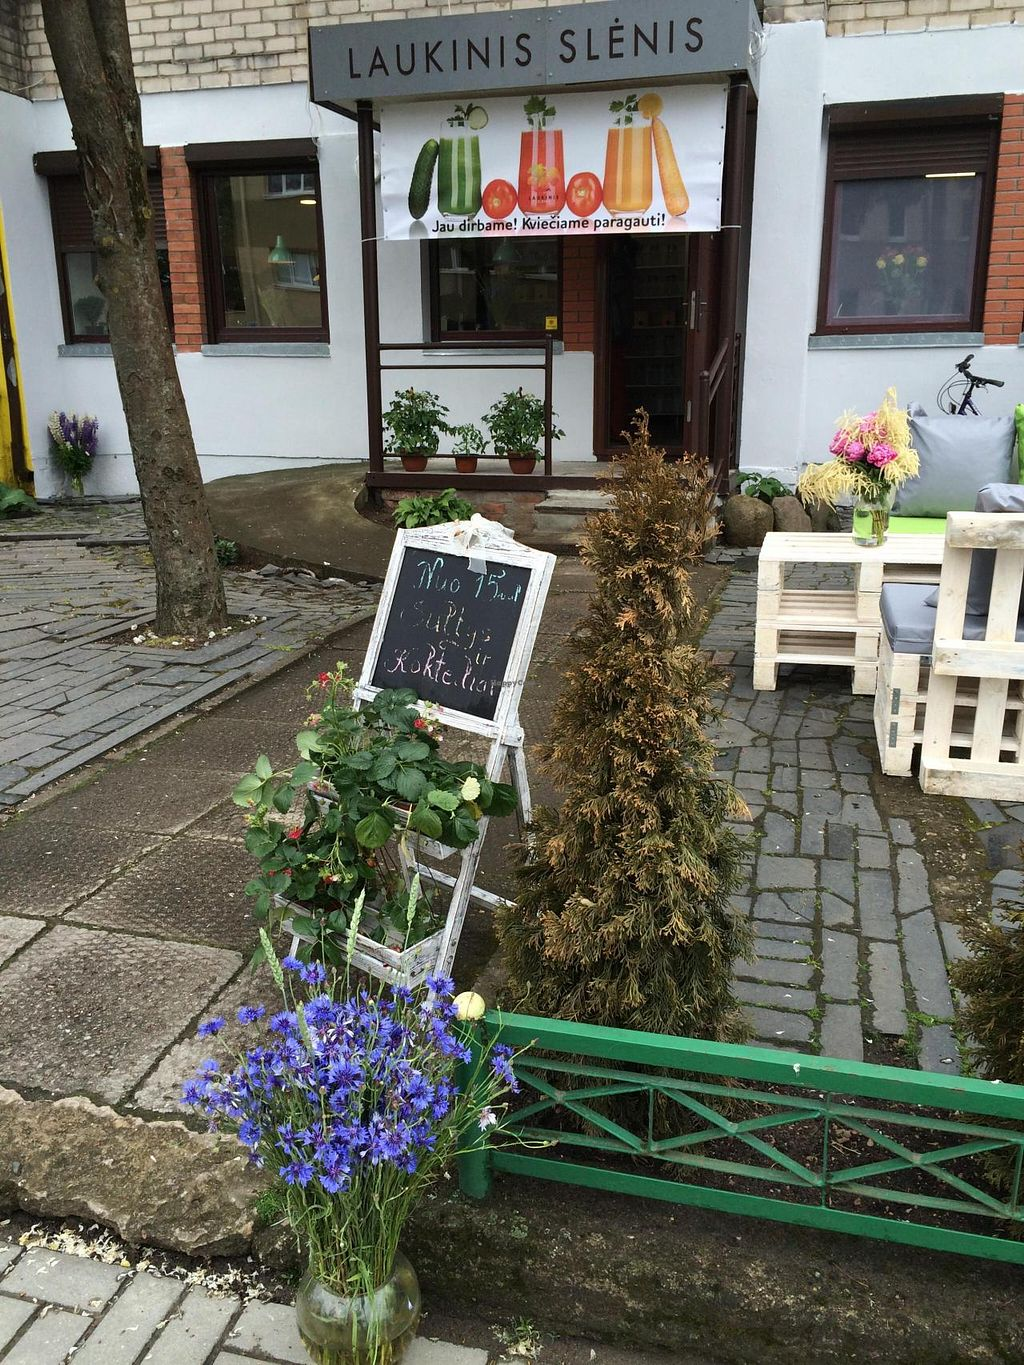 Photo of Laukinis Slenis  by Laukinis_slenis <br/>We are vegetarian and almost raw vegan cafe-bar :) We making smoothies, juices, salad, raw deserts and have healthy food shop <br/> July 5, 2015  - <a href='/contact/abuse/image/60132/108297'>Report</a>